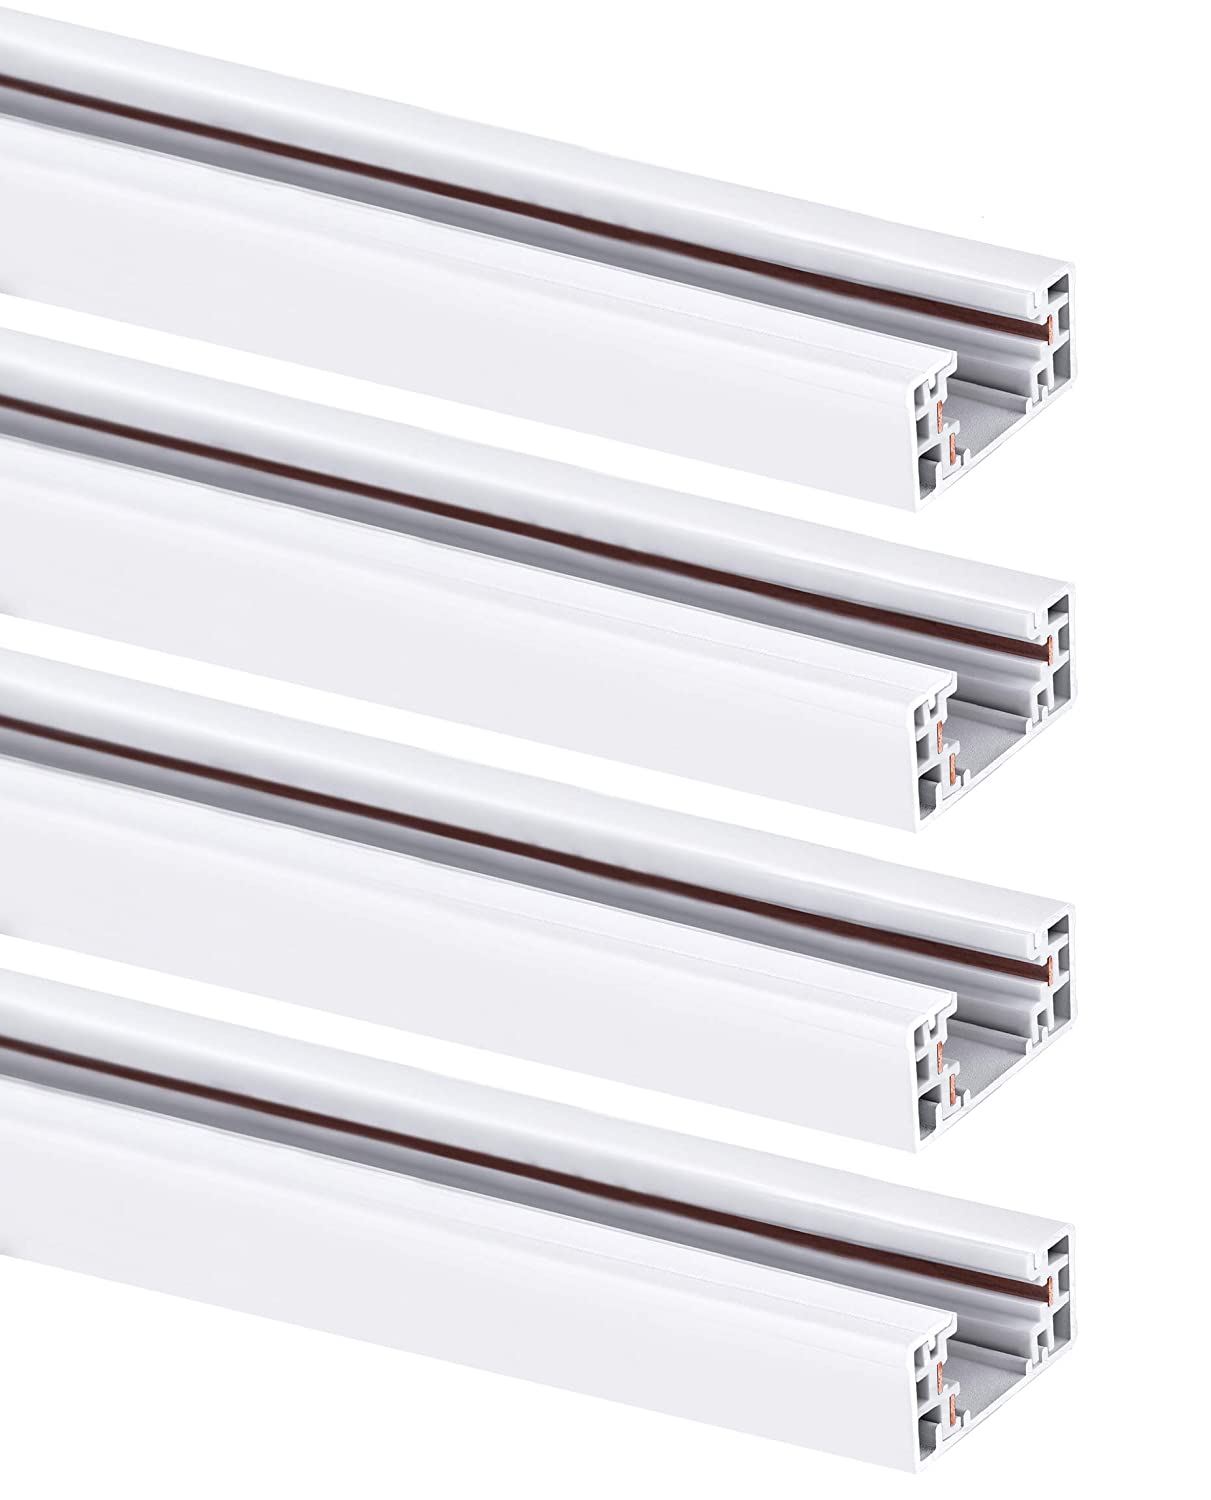 hyperikon track lighting section, 4ft h track rail, white singlehyperikon track lighting section, 4ft h track rail, white single circuit 3 wire track rail (pack of 4) amazon com